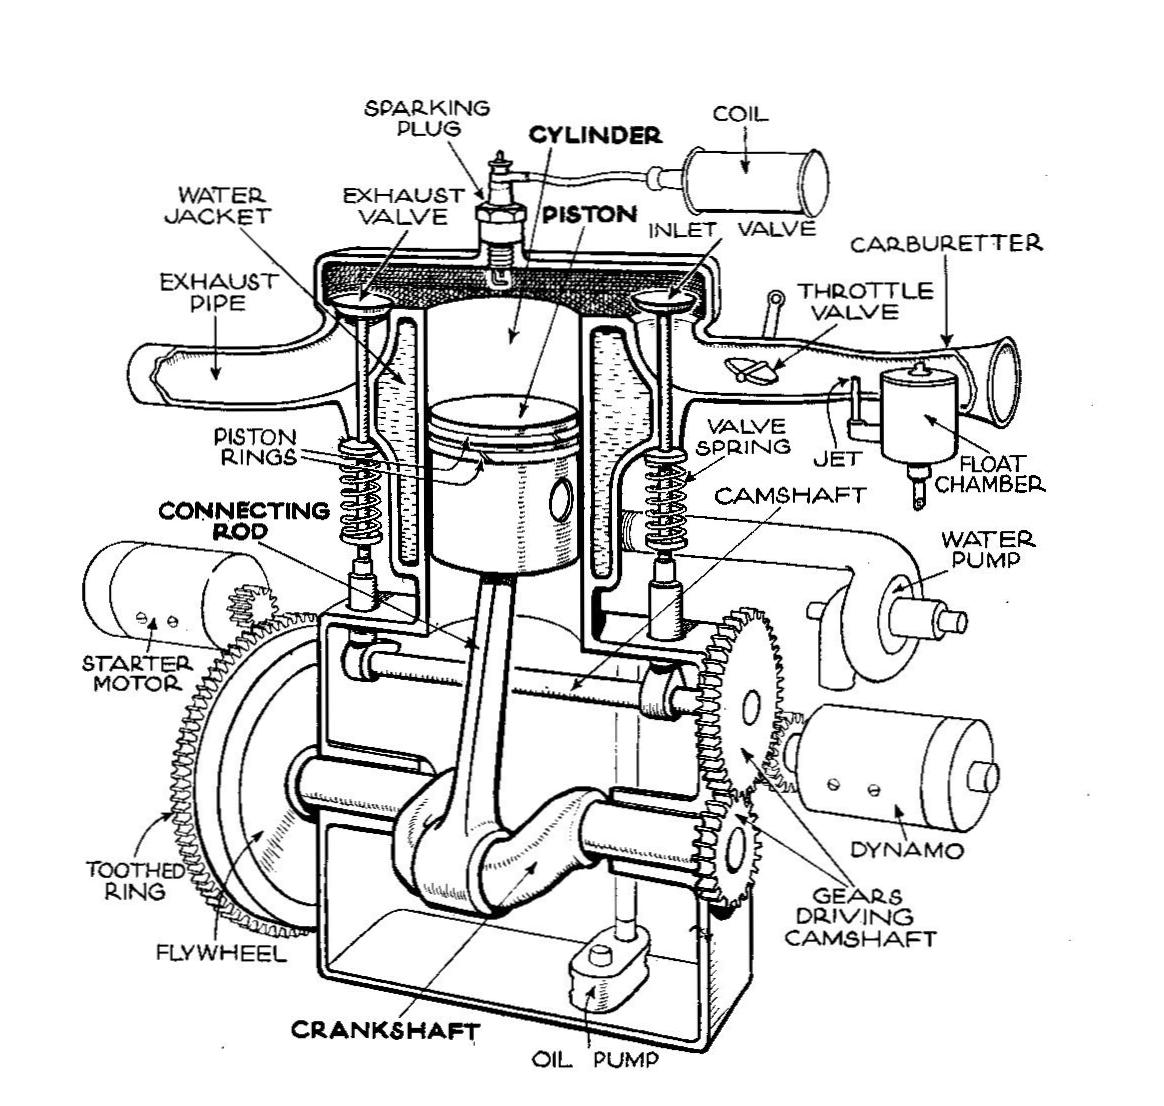 british gas 330 boiler wiring diagram